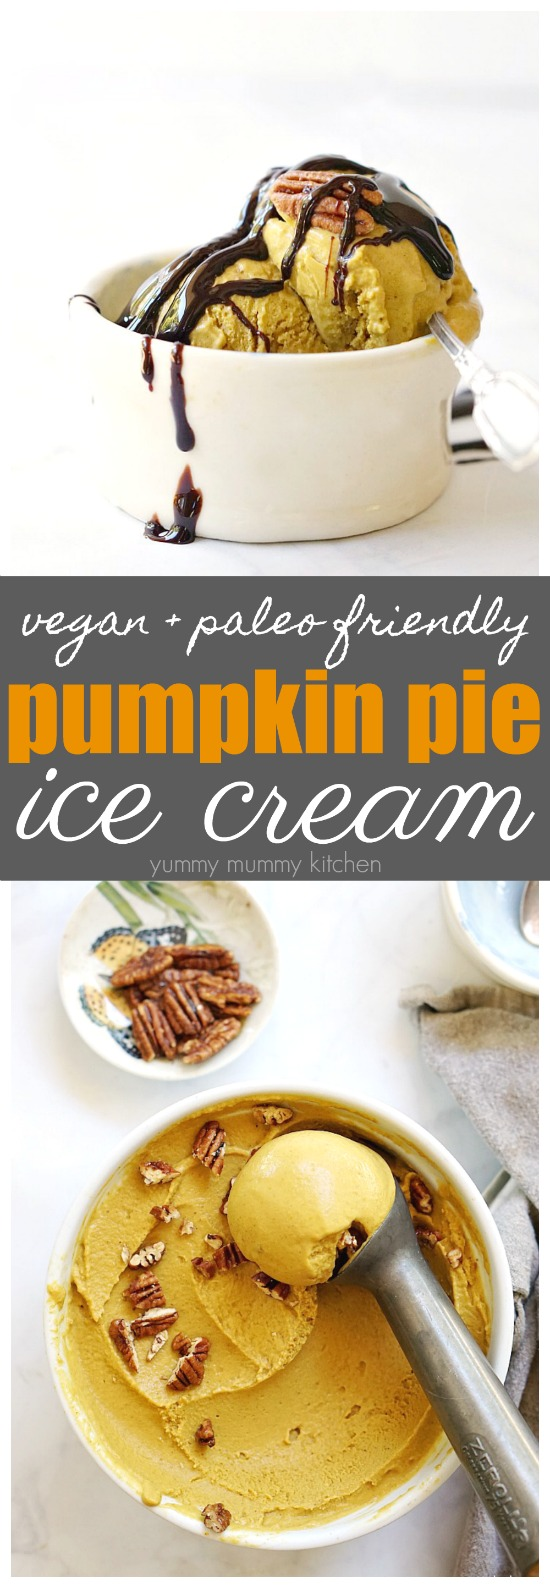 This vegan pumpkin ice cream recipe is made with coconut milk and makes a delicious fall dessert.